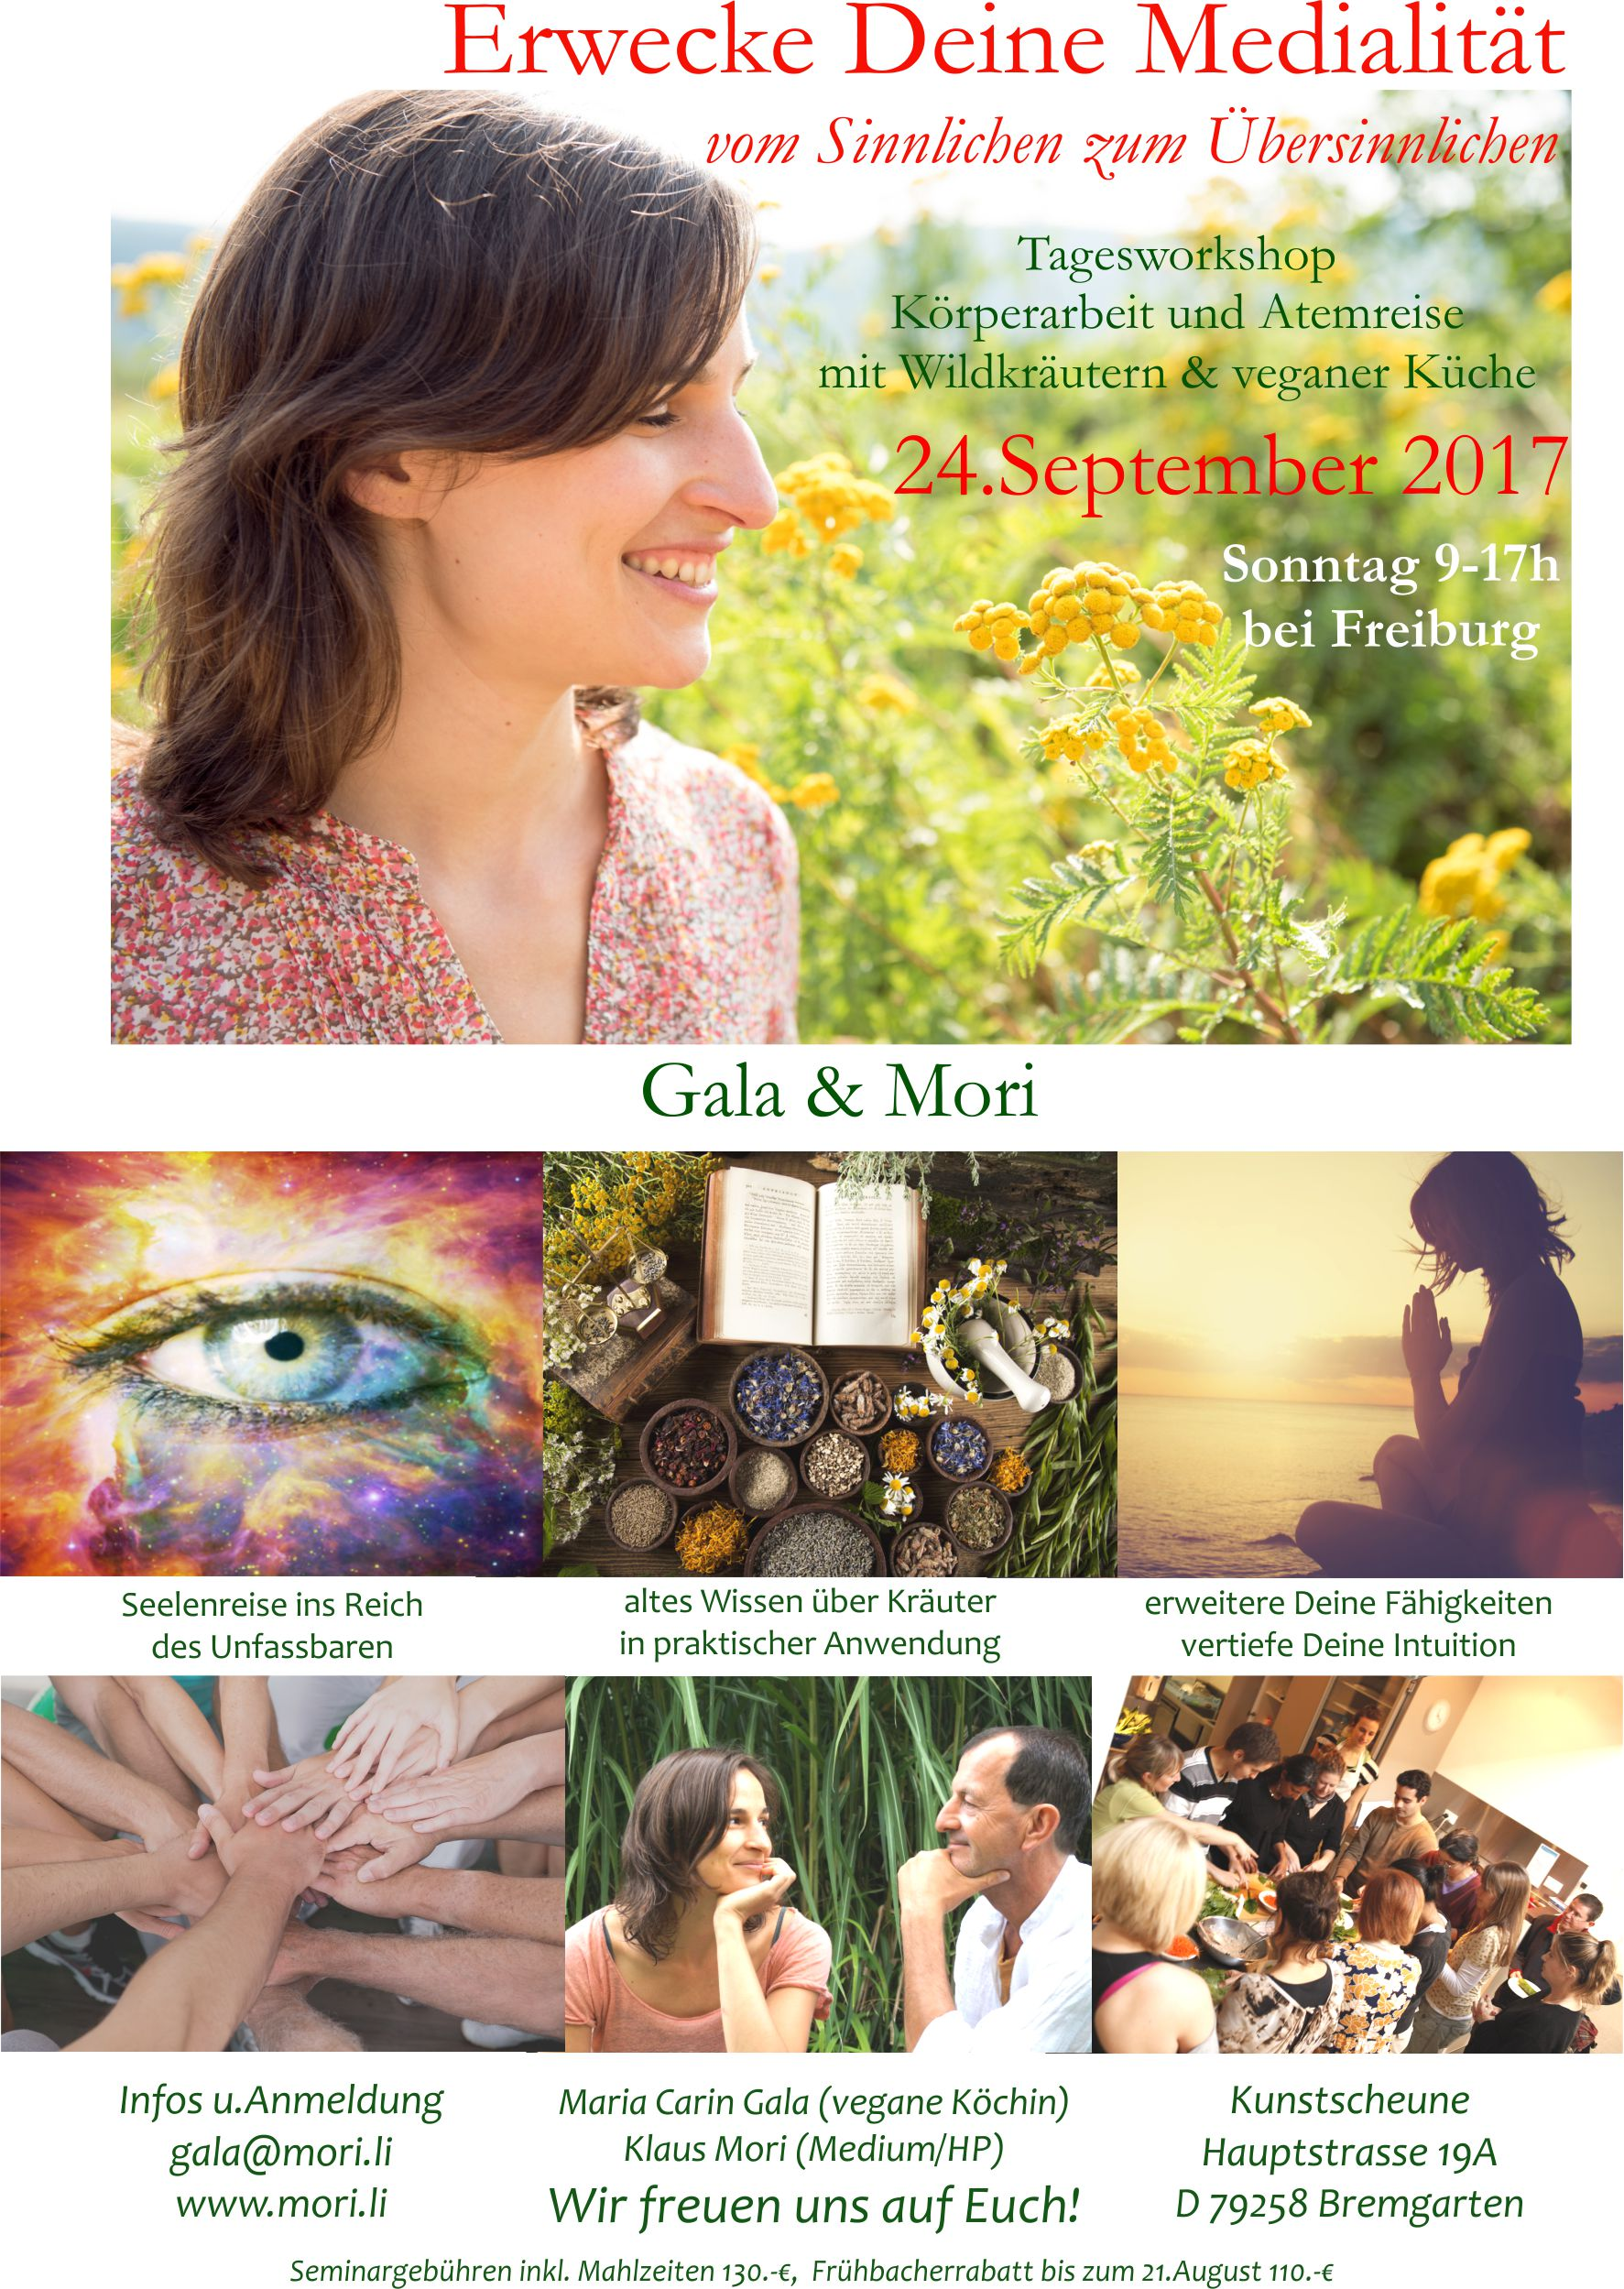 1 Day Workshop - On Sunday the 24th are German elections and I will also be offering a one day workshop with myself Gala's Organic Kitchen and the talented medium Klaus Mori with his many years of mediumistic experience, this time: Awaken Your Mediumship & Vegan Wildherb Cooking! Mori will lead the body and breath work and we have a little help from a Black Forest witch Sophia Sunshine, who creates and sells her own wild foraged cosmetic range called Eat Me Cosmetics or Iss Mich Kosmetik. She will share with me her wisdom of wild herbs that I will incorporate into our vegan menu designed to assist in opening our sensual self to explore the supernatural. We will prepare and enjoy a meal together and a healthy and delicious dessert is always part of the process! Contact me for more information: galasorganickitchen@gmail.com